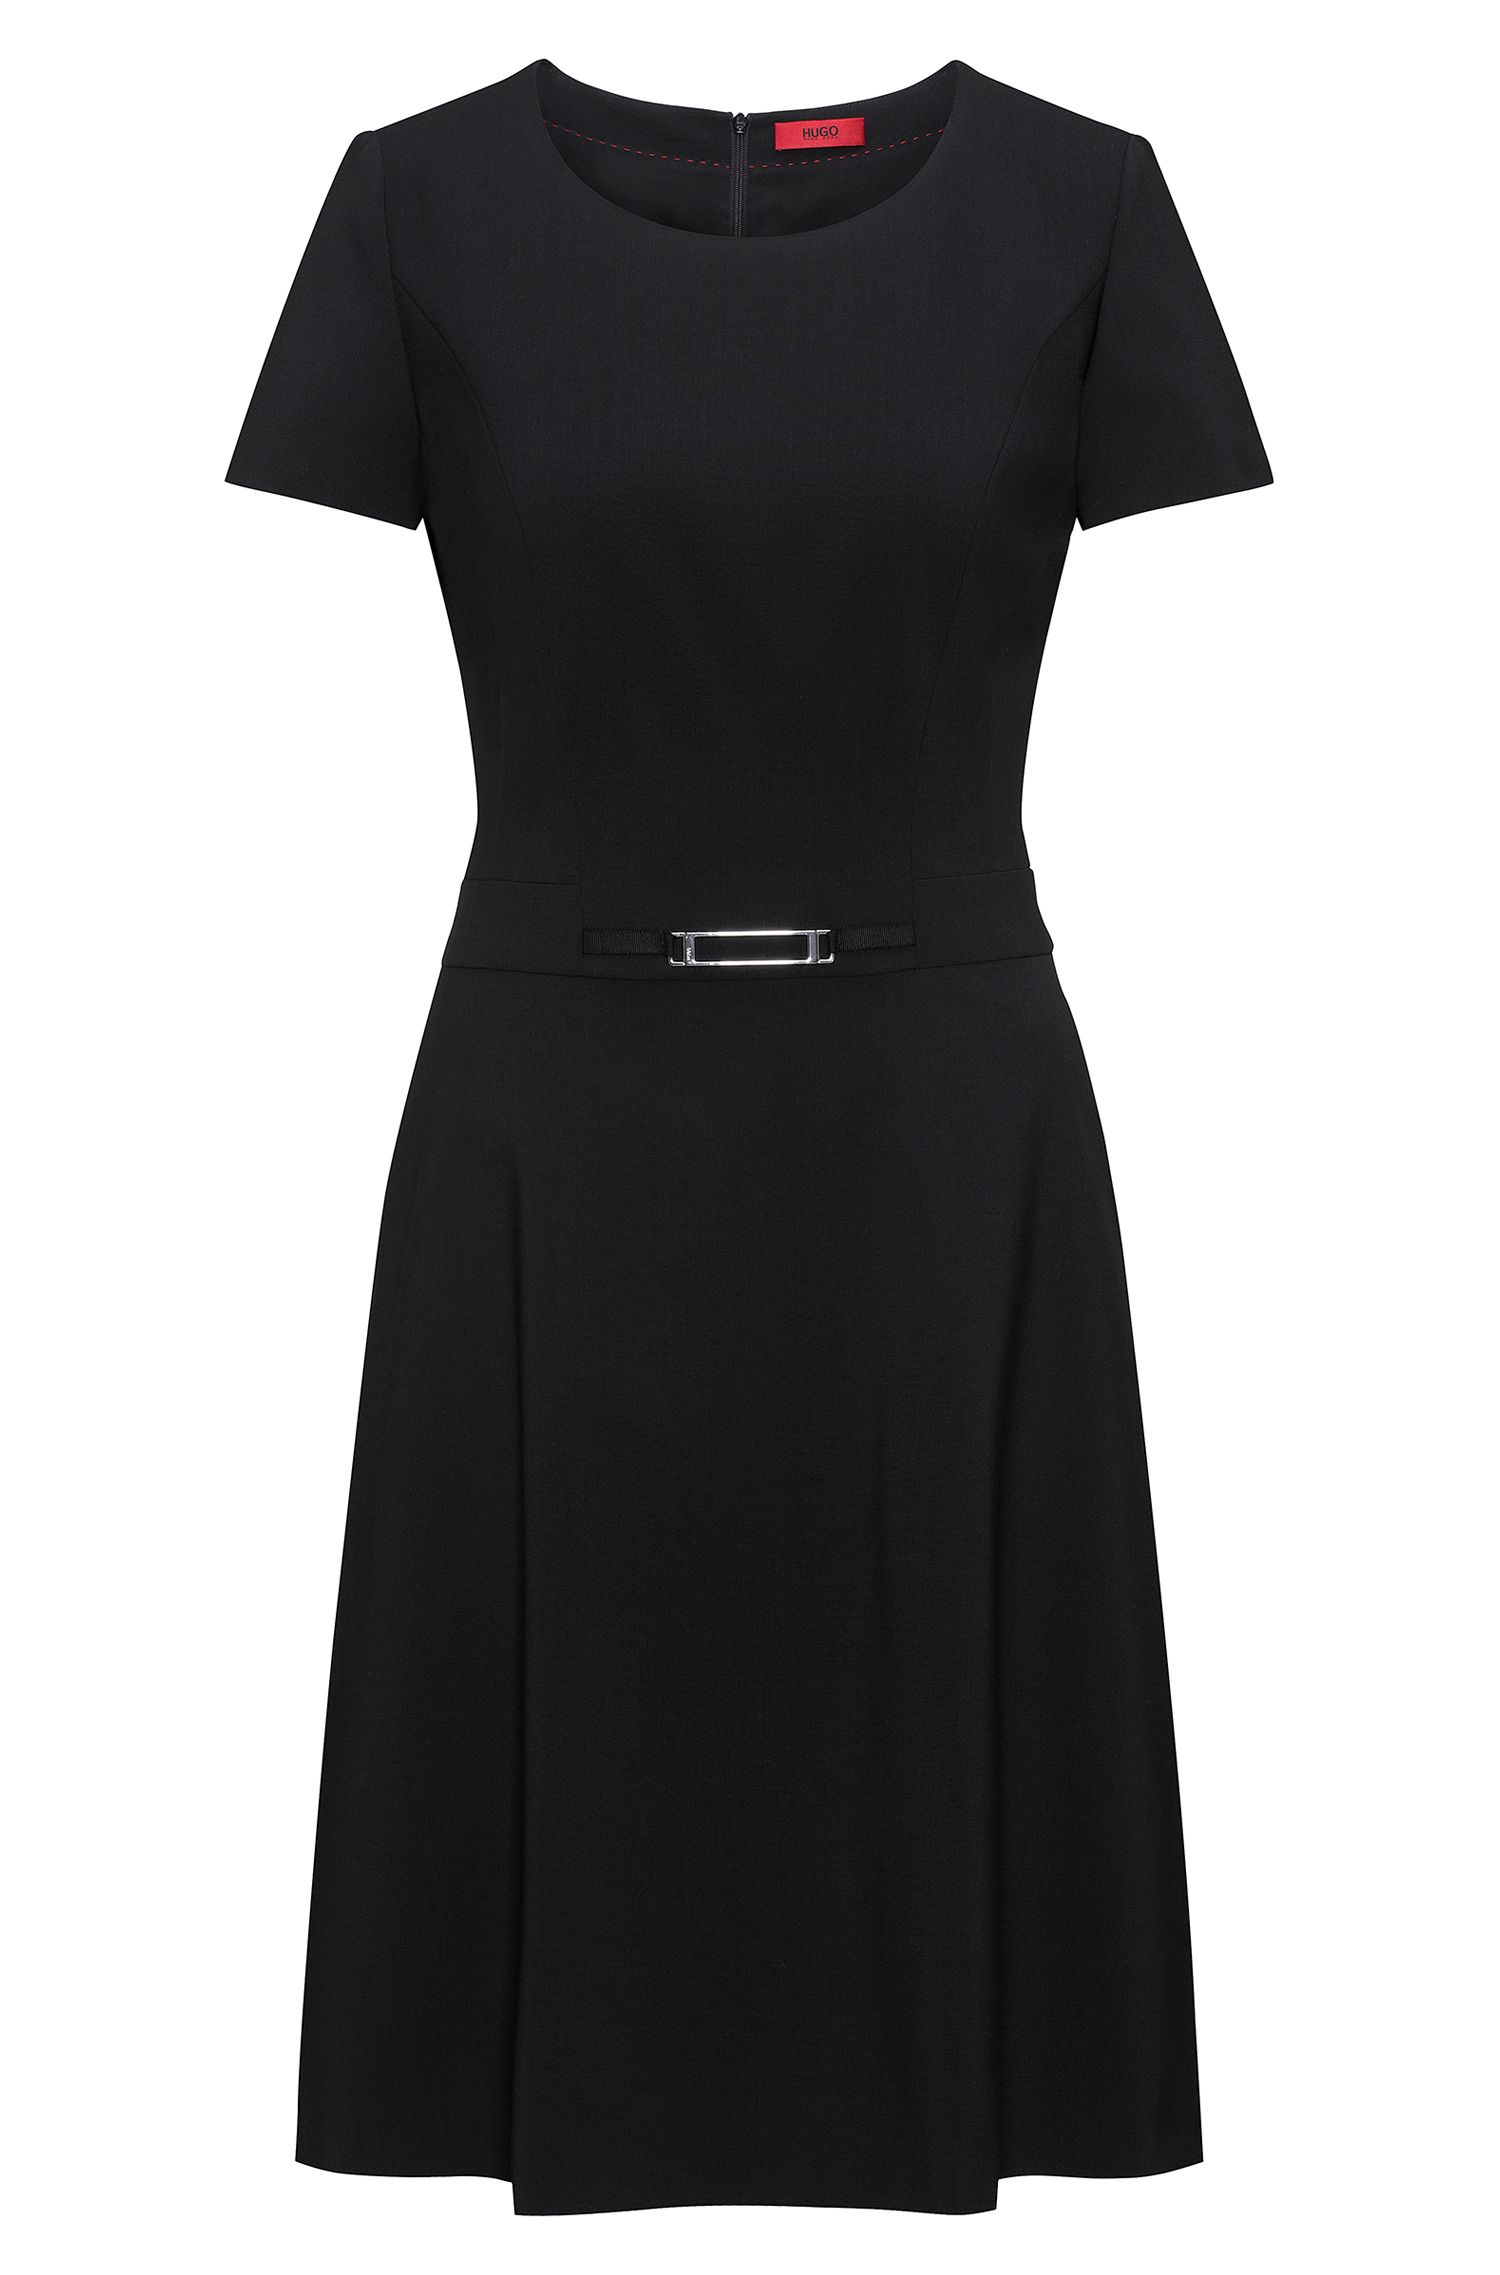 Short-sleeved A-line dress in stretch wool